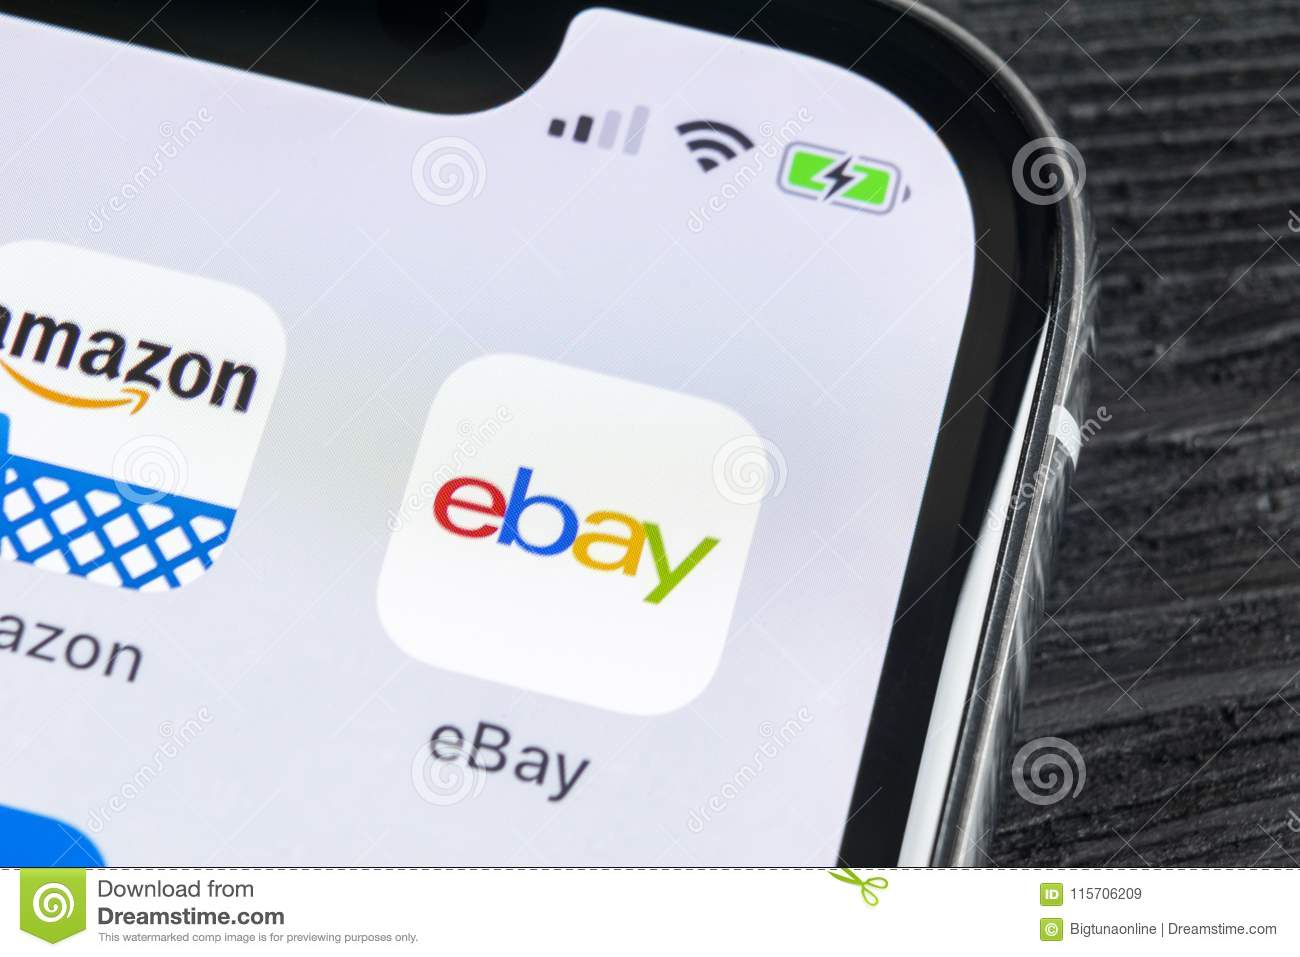 Ebay Application Icon On Apple Iphone X Screen Close Up Ebay App Icon Ebay Com Is Largest Online Auction And Shopping Websites Editorial Stock Image Image Of Closeup Illustrative 115706209